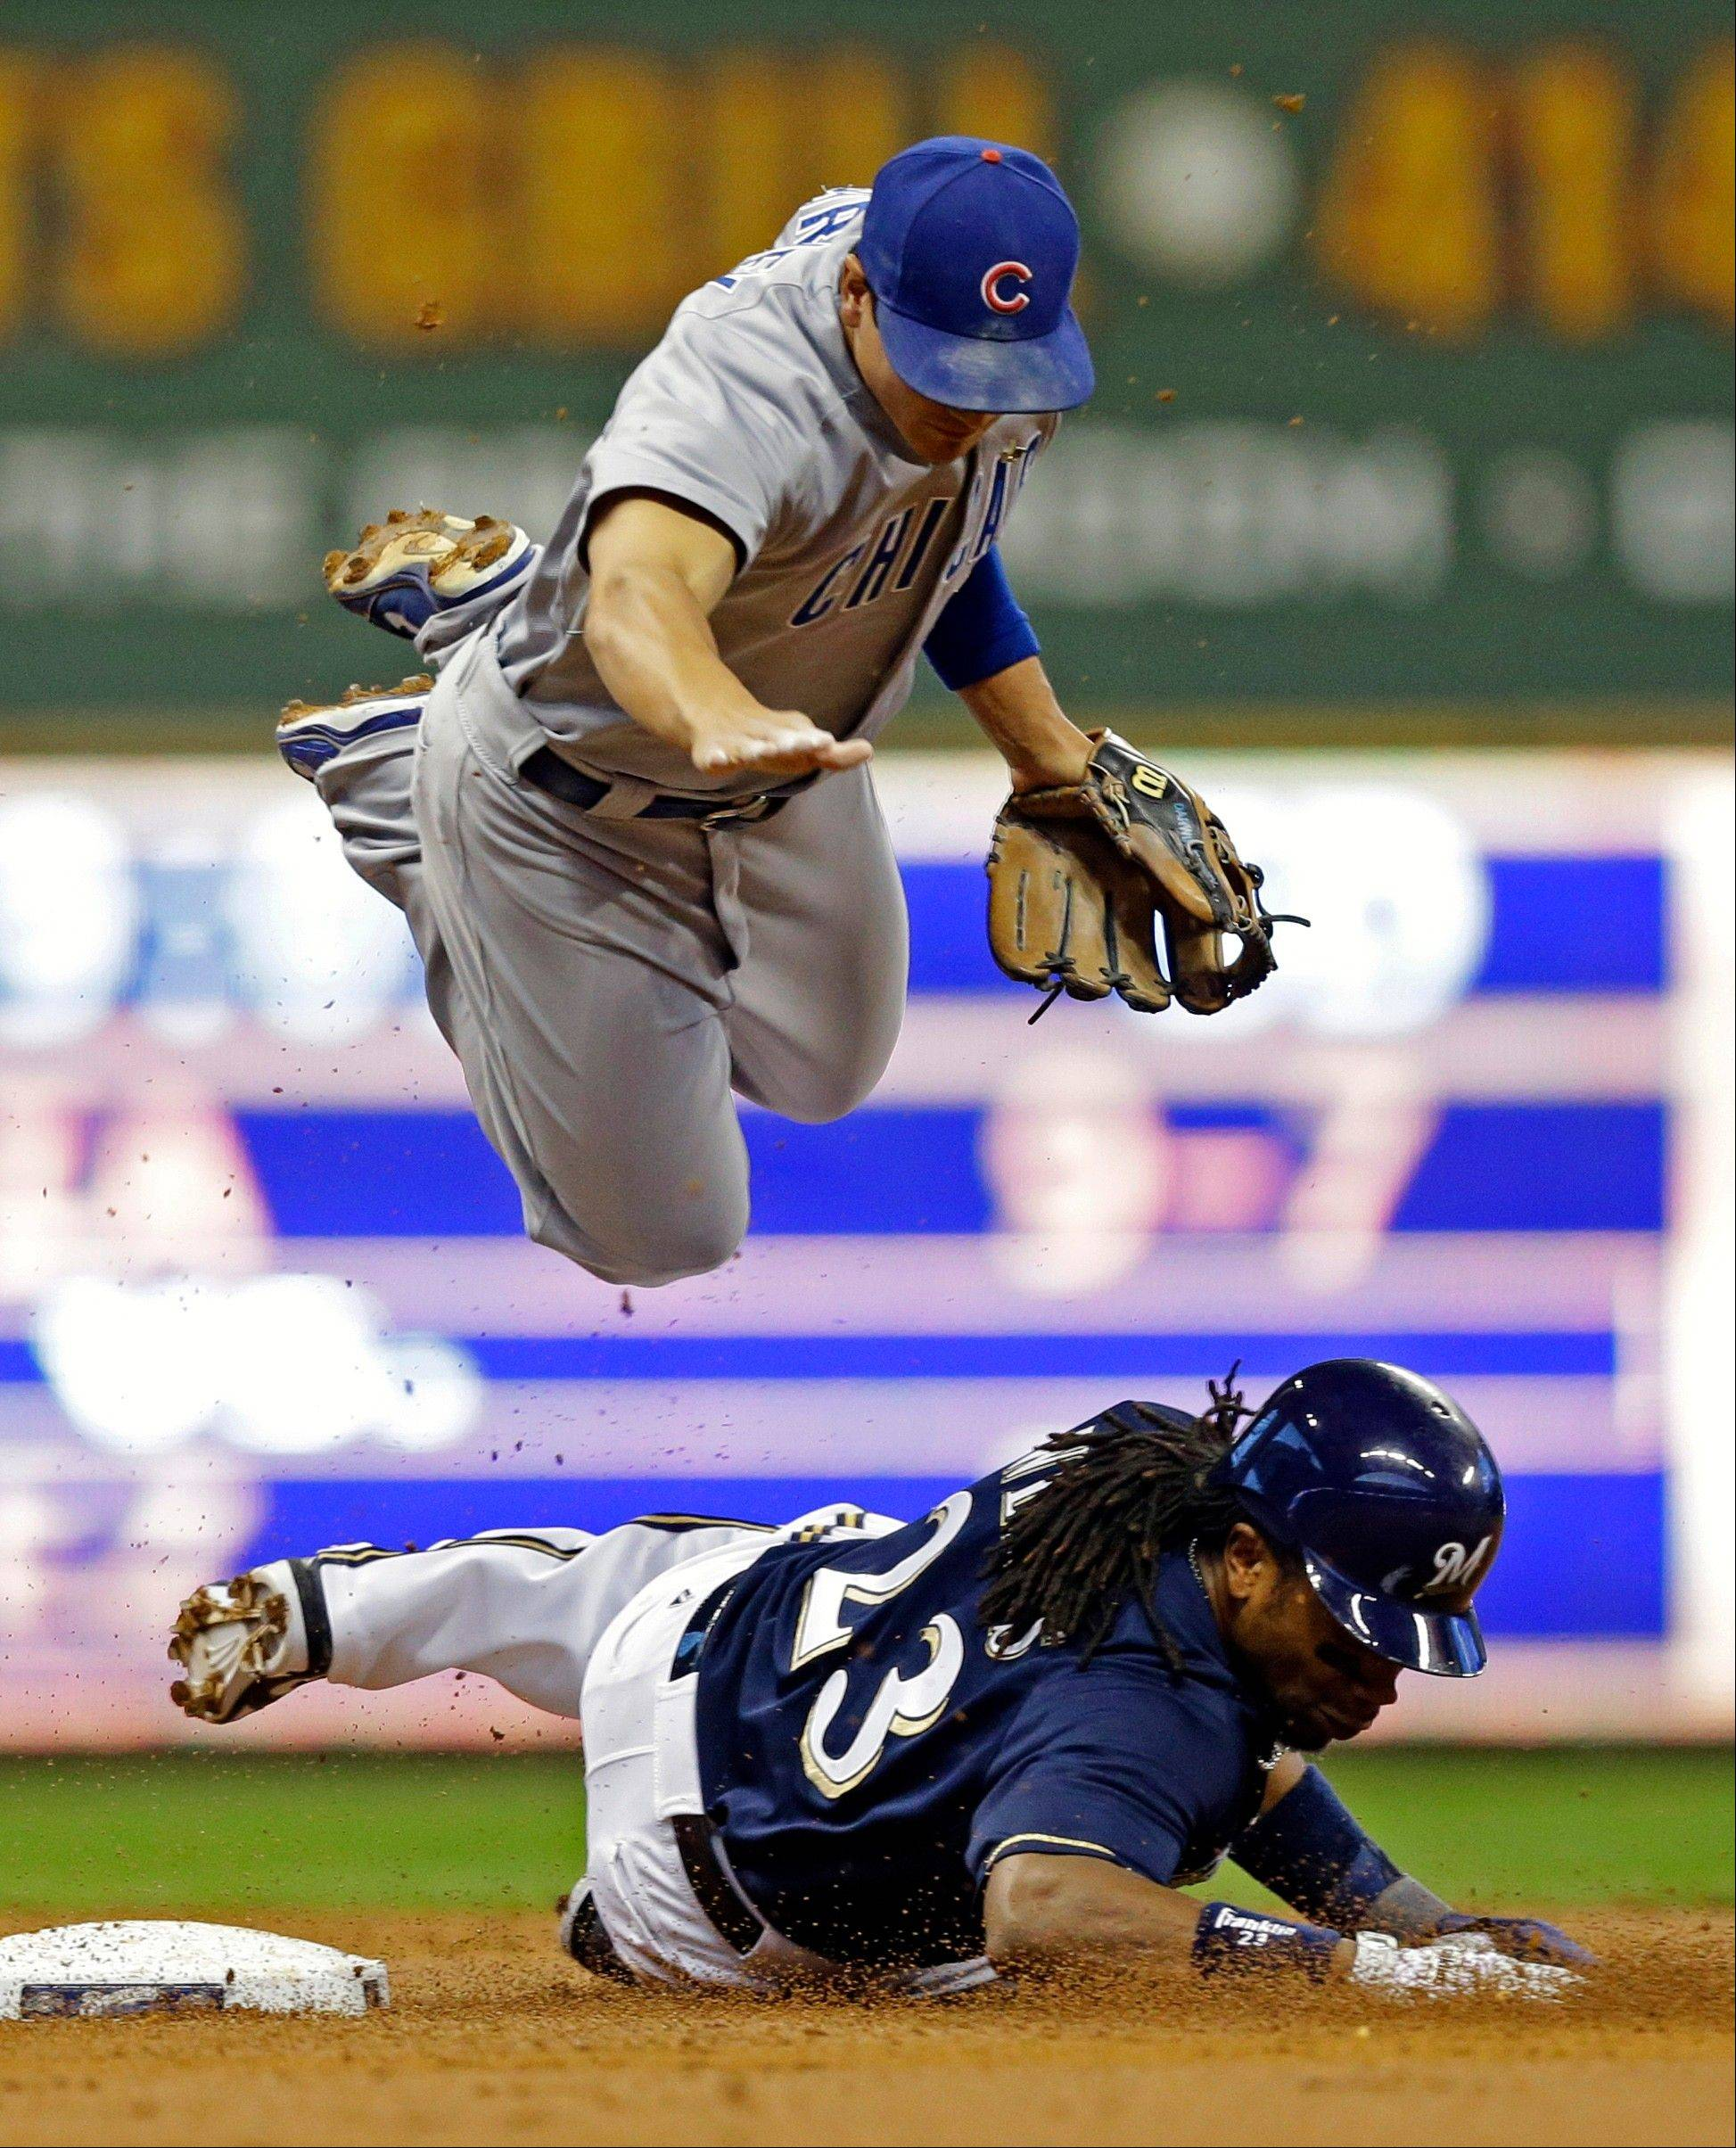 Chicago Cubs' Darwin Barney, top, is upended as he forces out Milwaukee Brewers' Rickie Weeks at second base and throws on to first base for a double play on Brewers' Ryan Braun during the first inning of a baseball game Monday in Milwaukee.